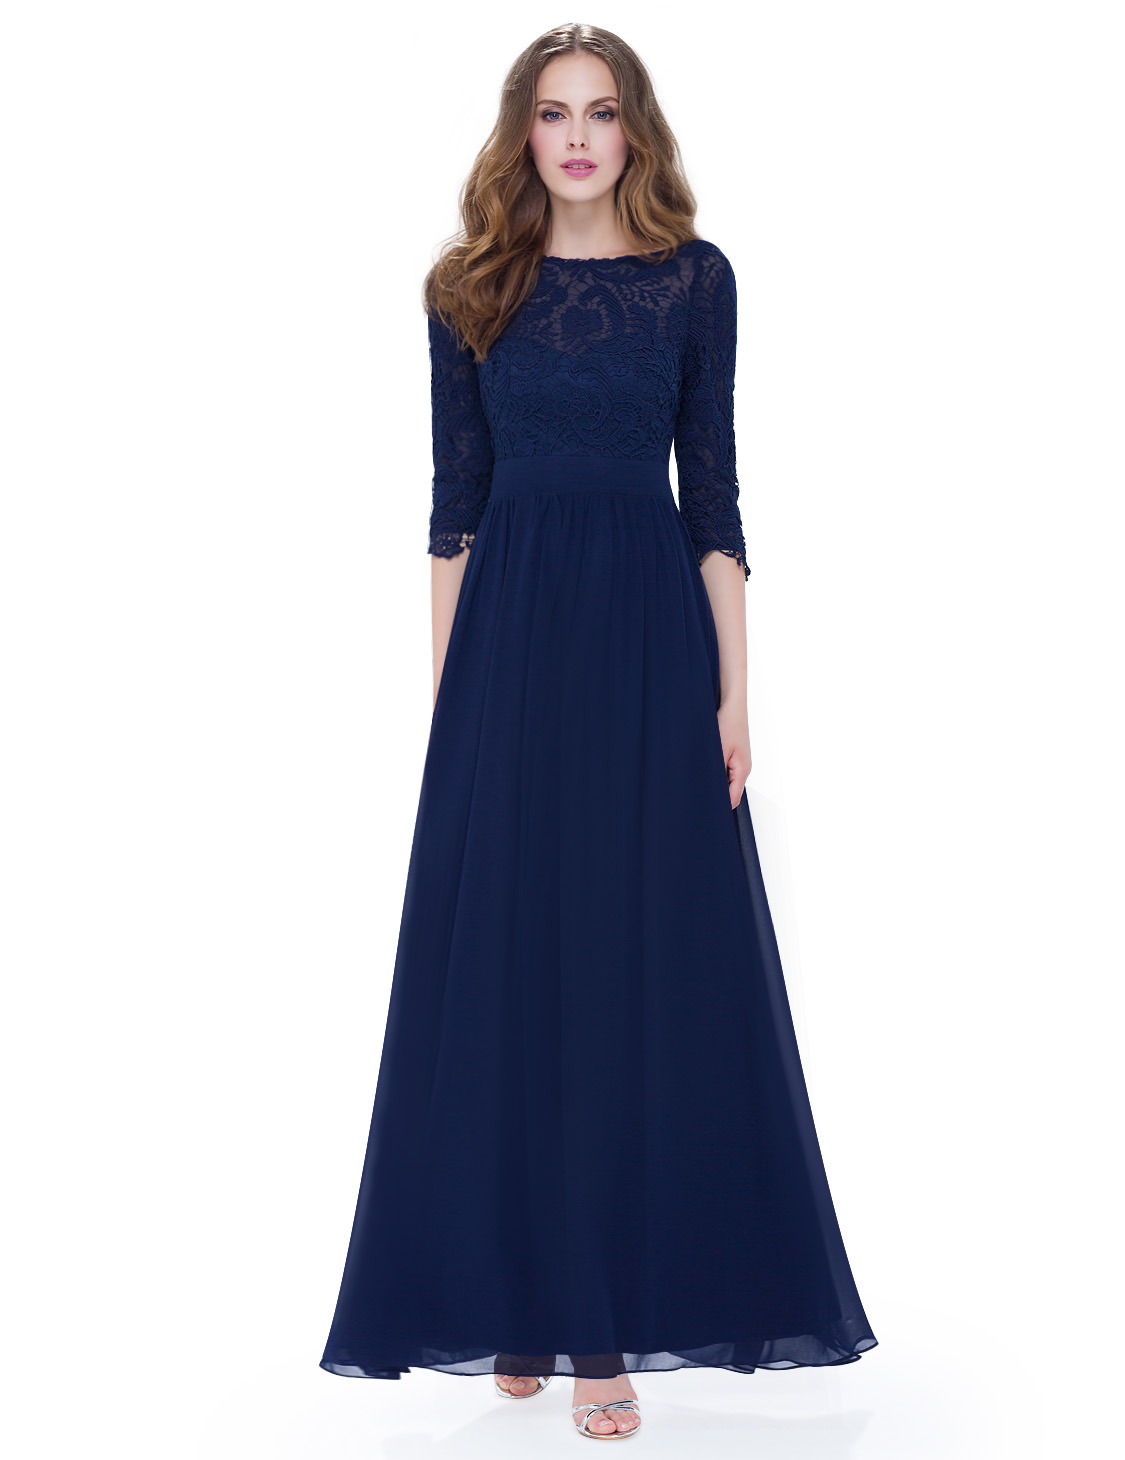 Womens 3/4 Sleeves Lace Bridesmaid Dresses Evening Prom ...